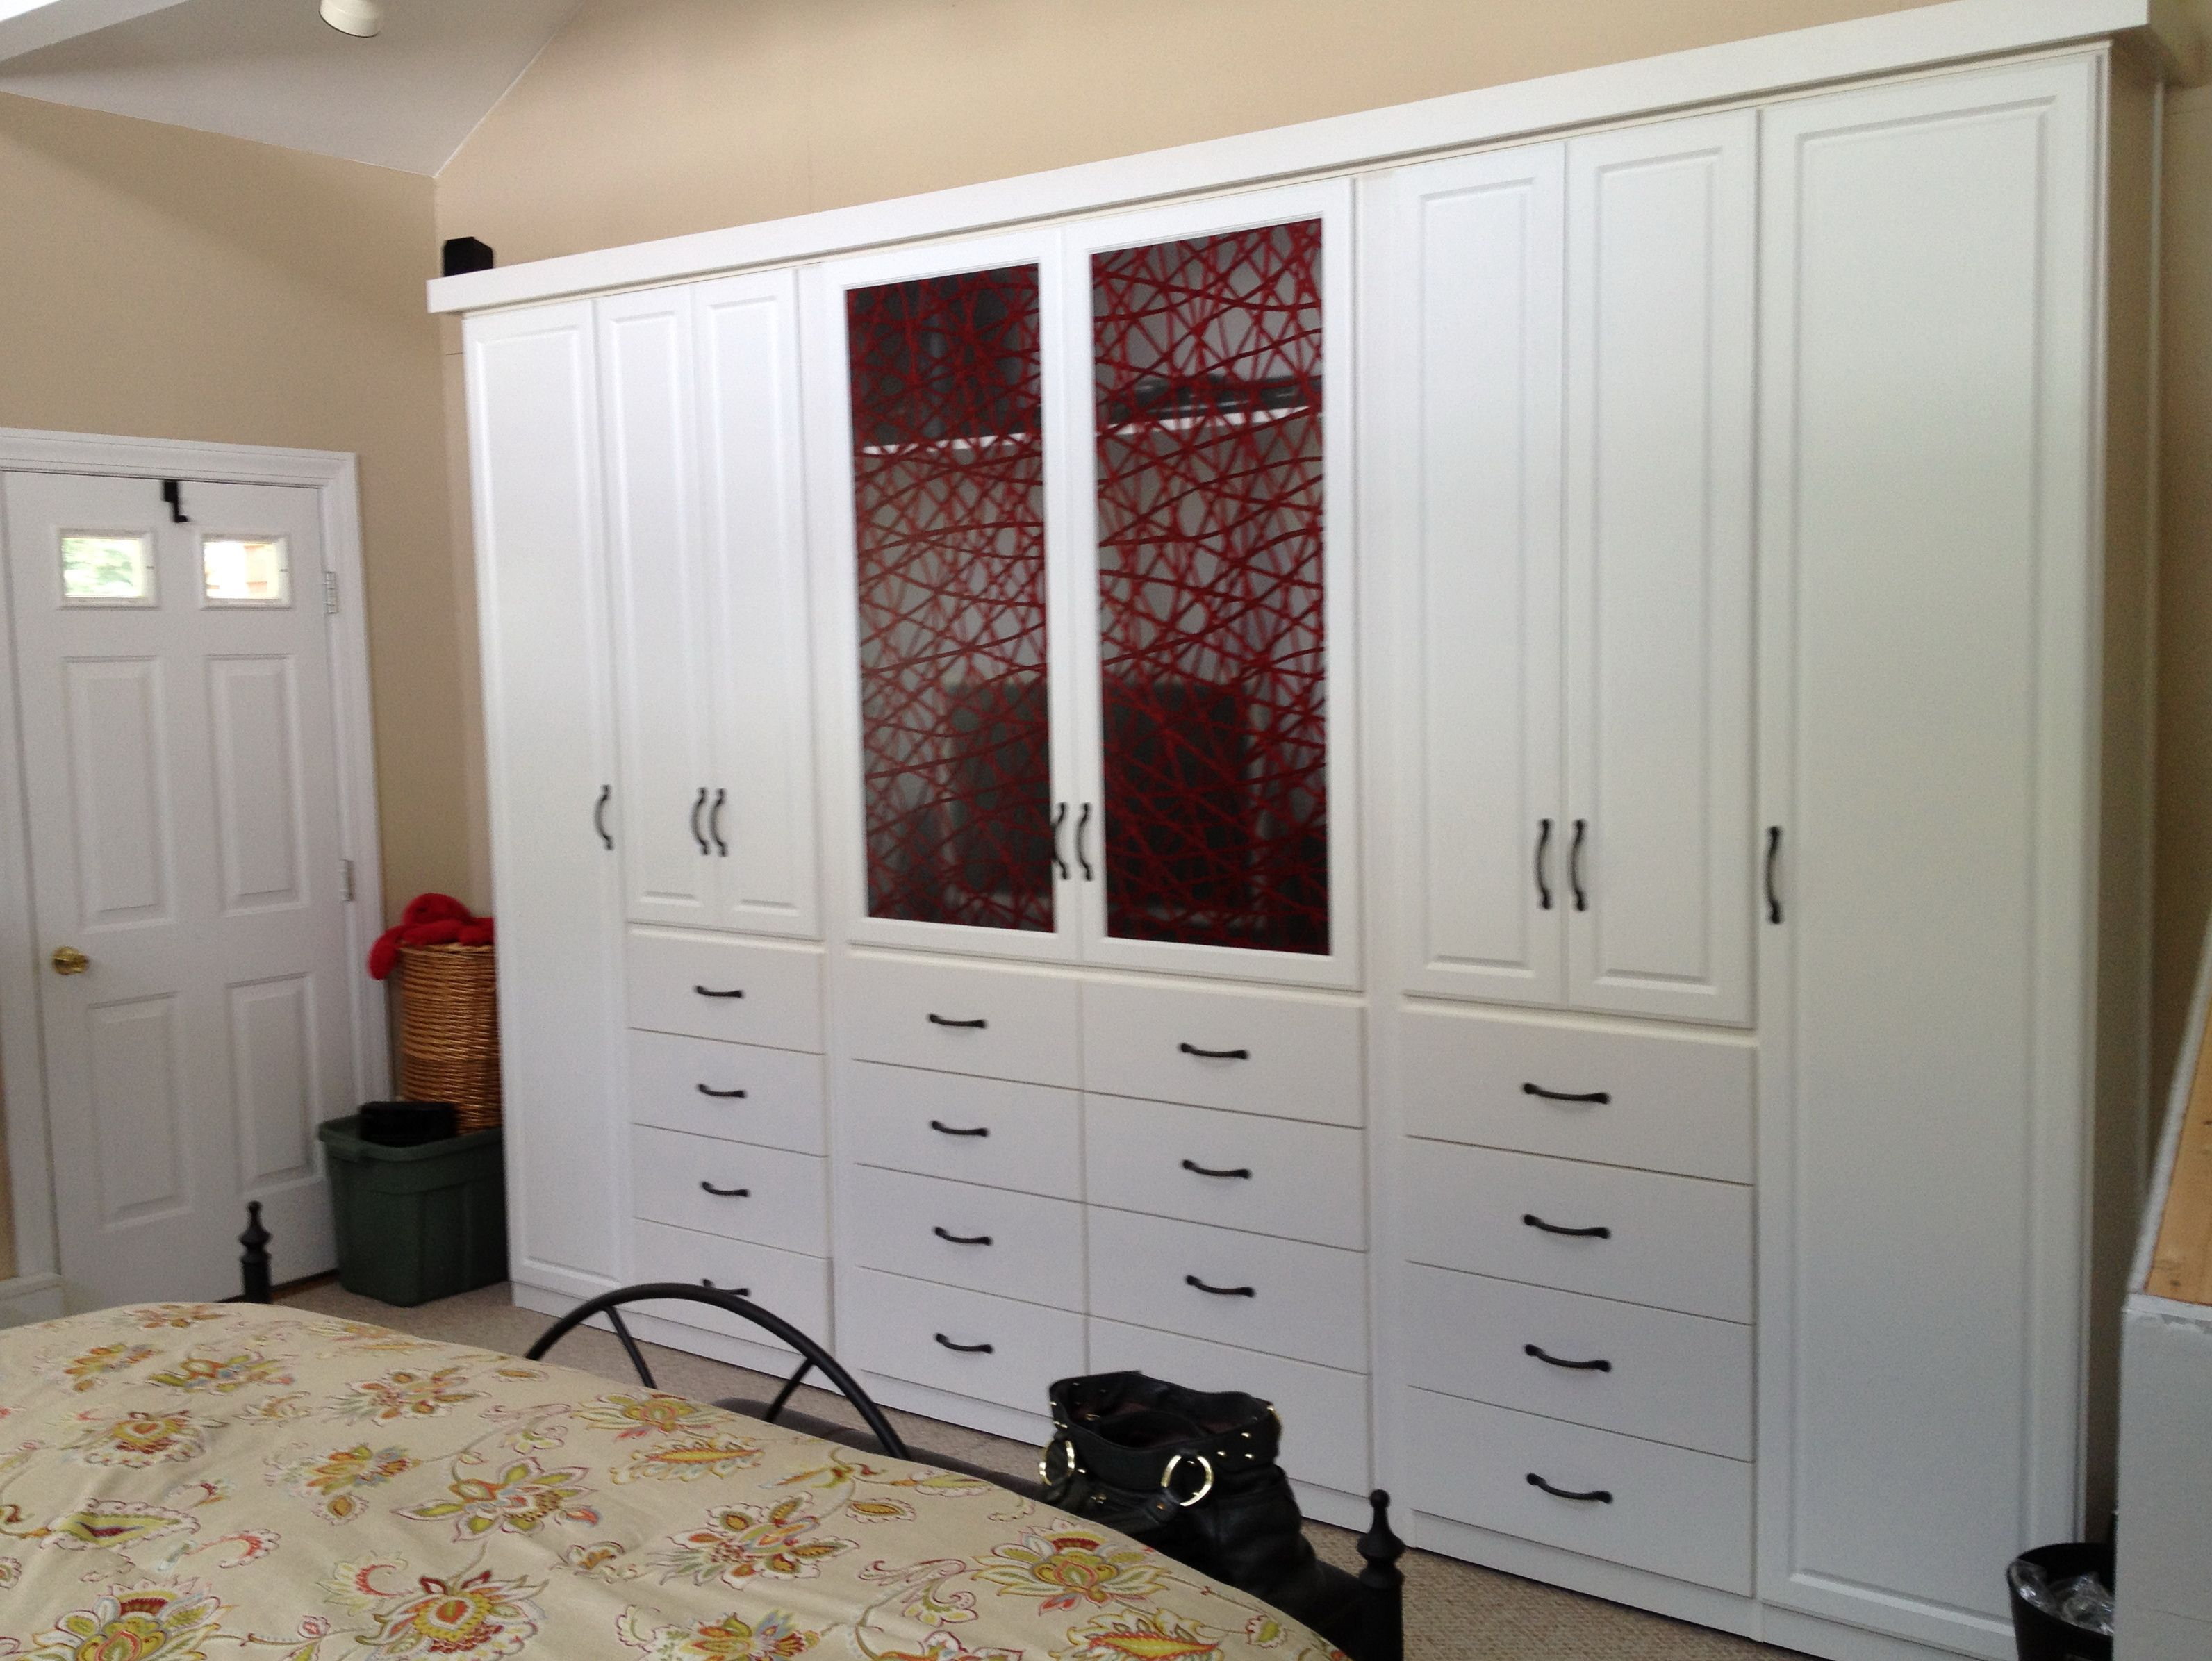 niche dilworth my closet apartments built custom in east systems closets shelving niches w